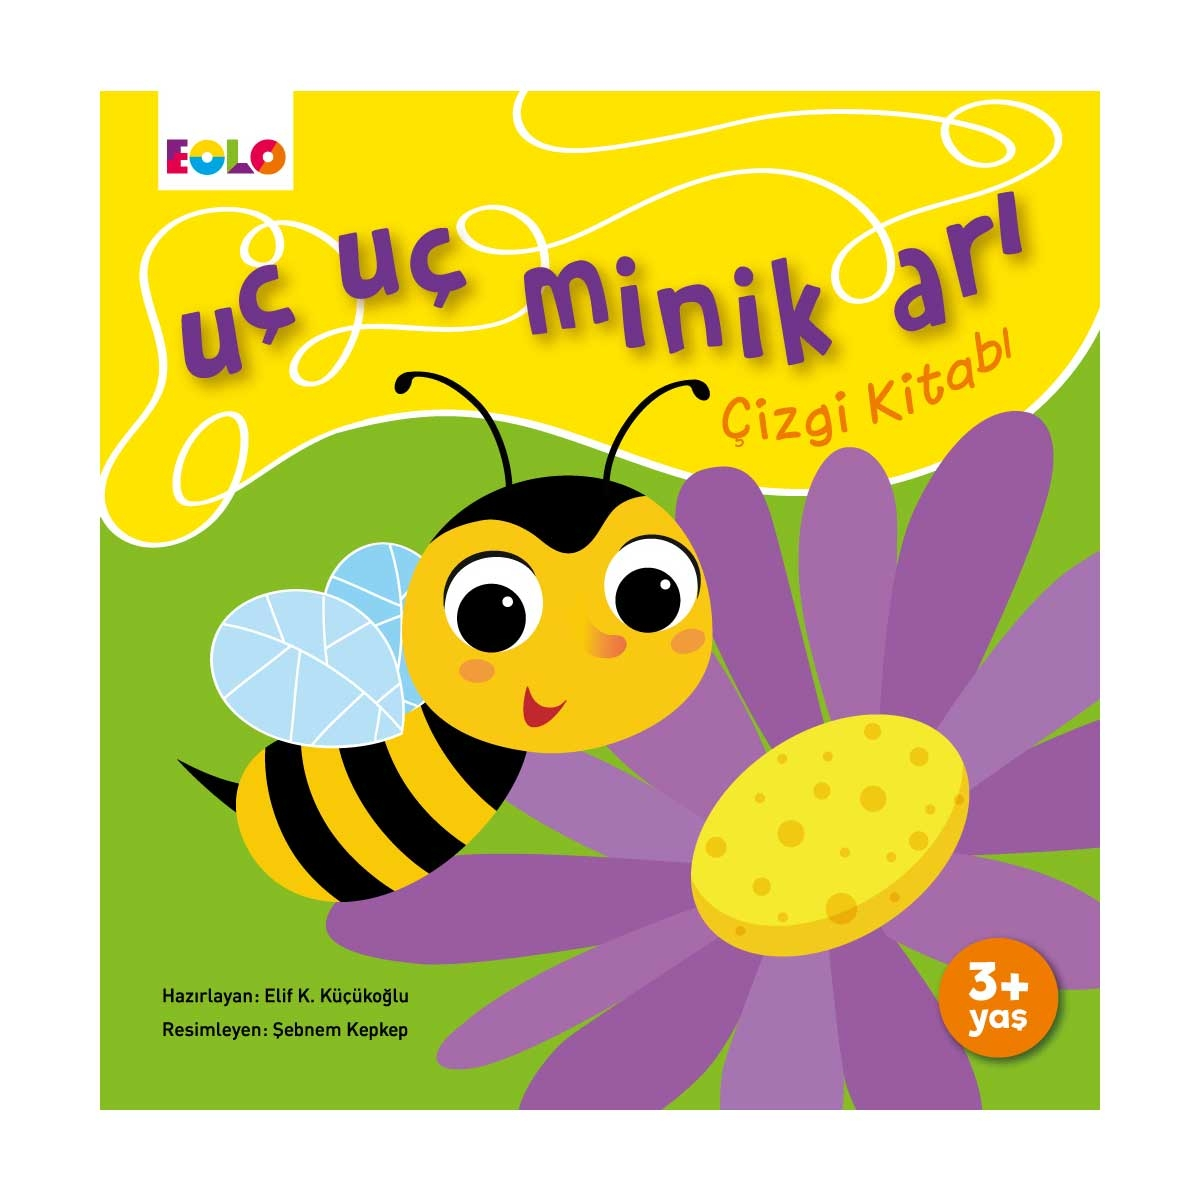 Buzz buzz buzz, My Little Bee Drawing Book for Kids